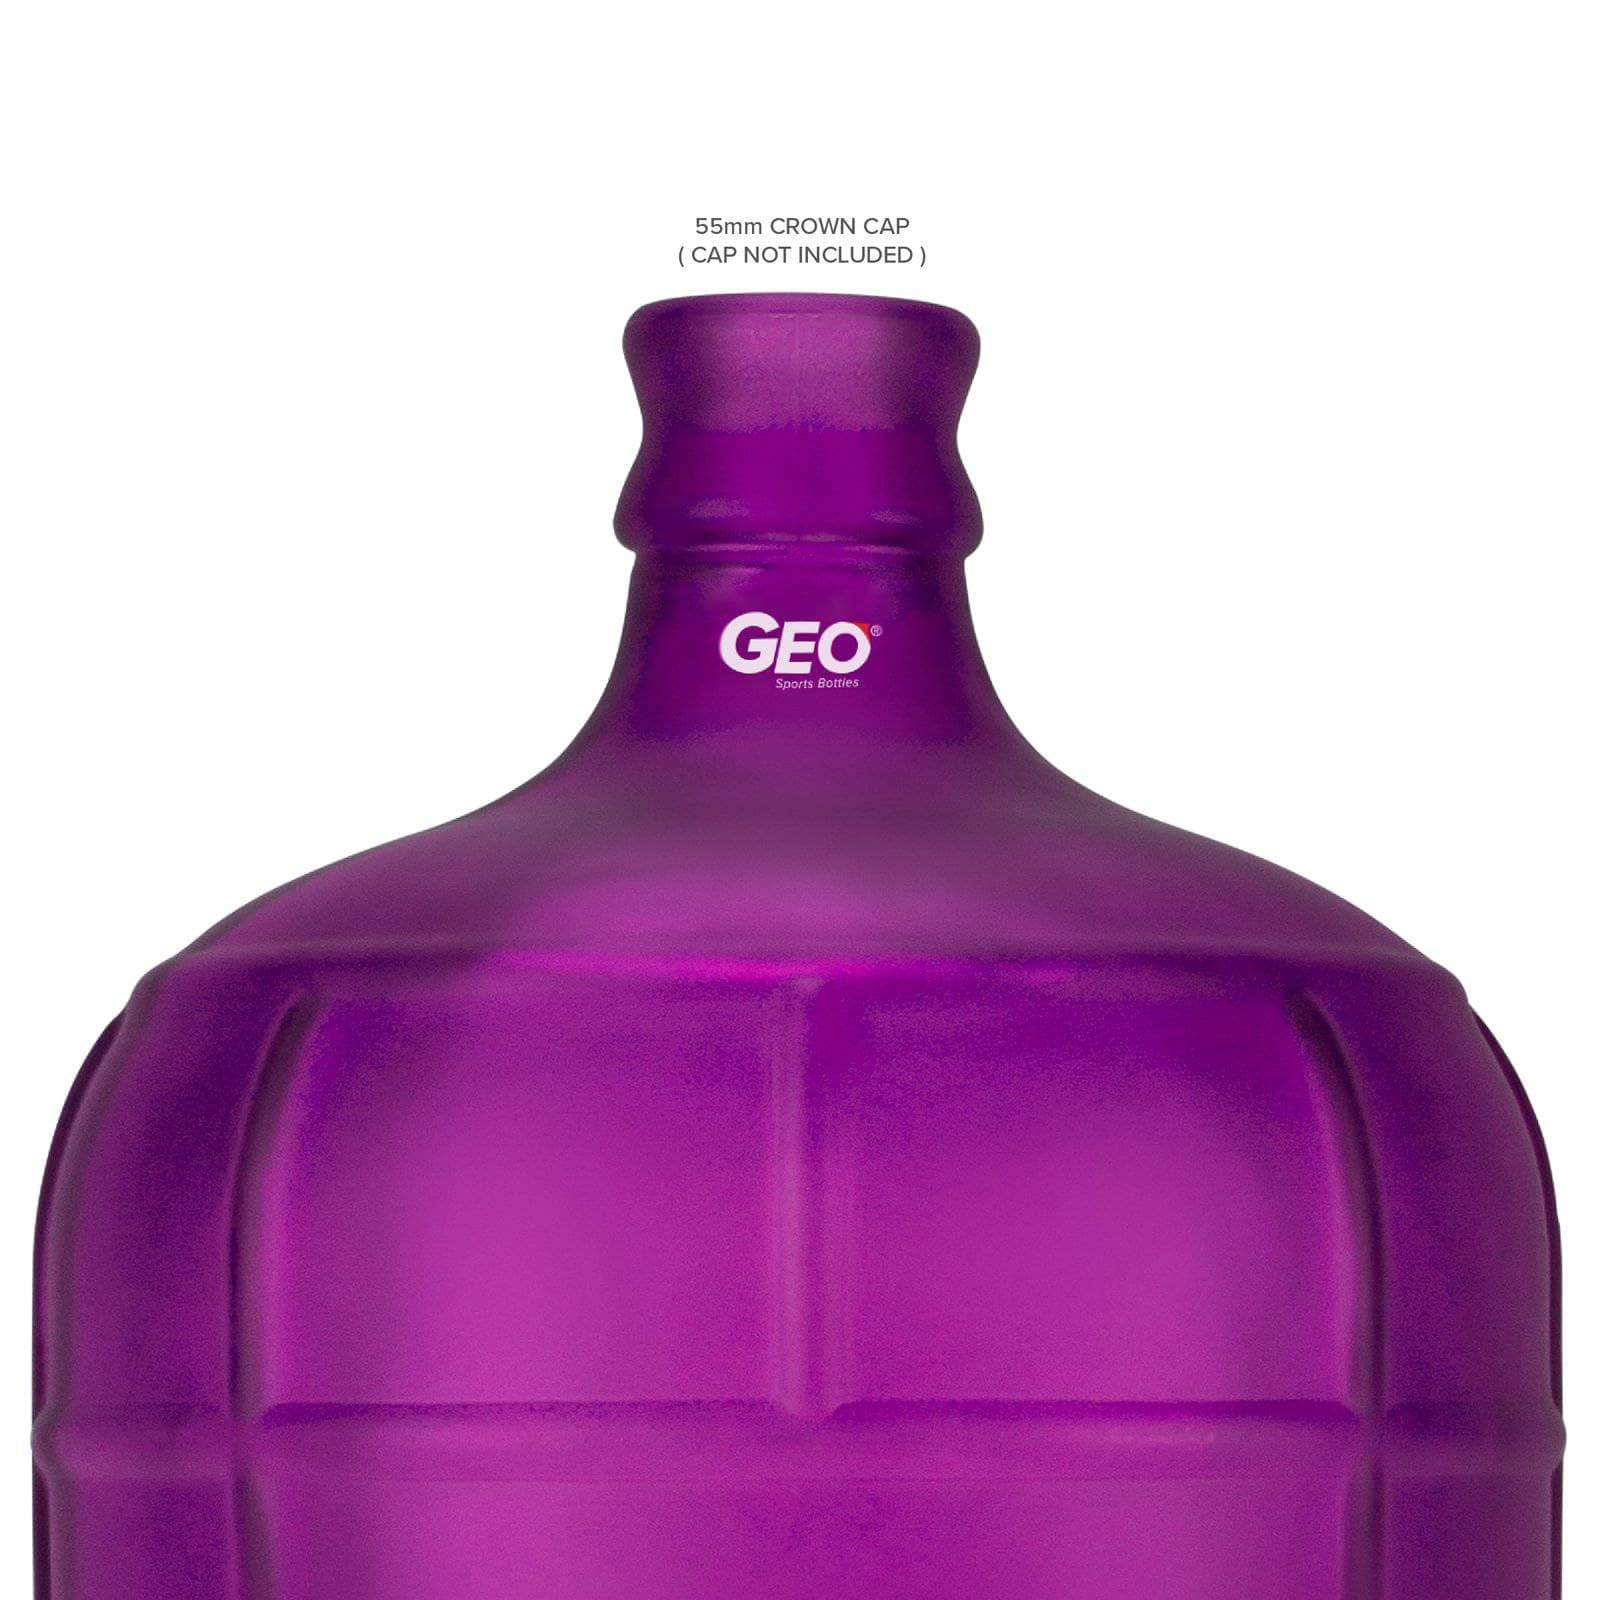 Geo Bottles Glass Bottles 3 Gallon Round Frosted Glass Carboy w/55mm Crown Top